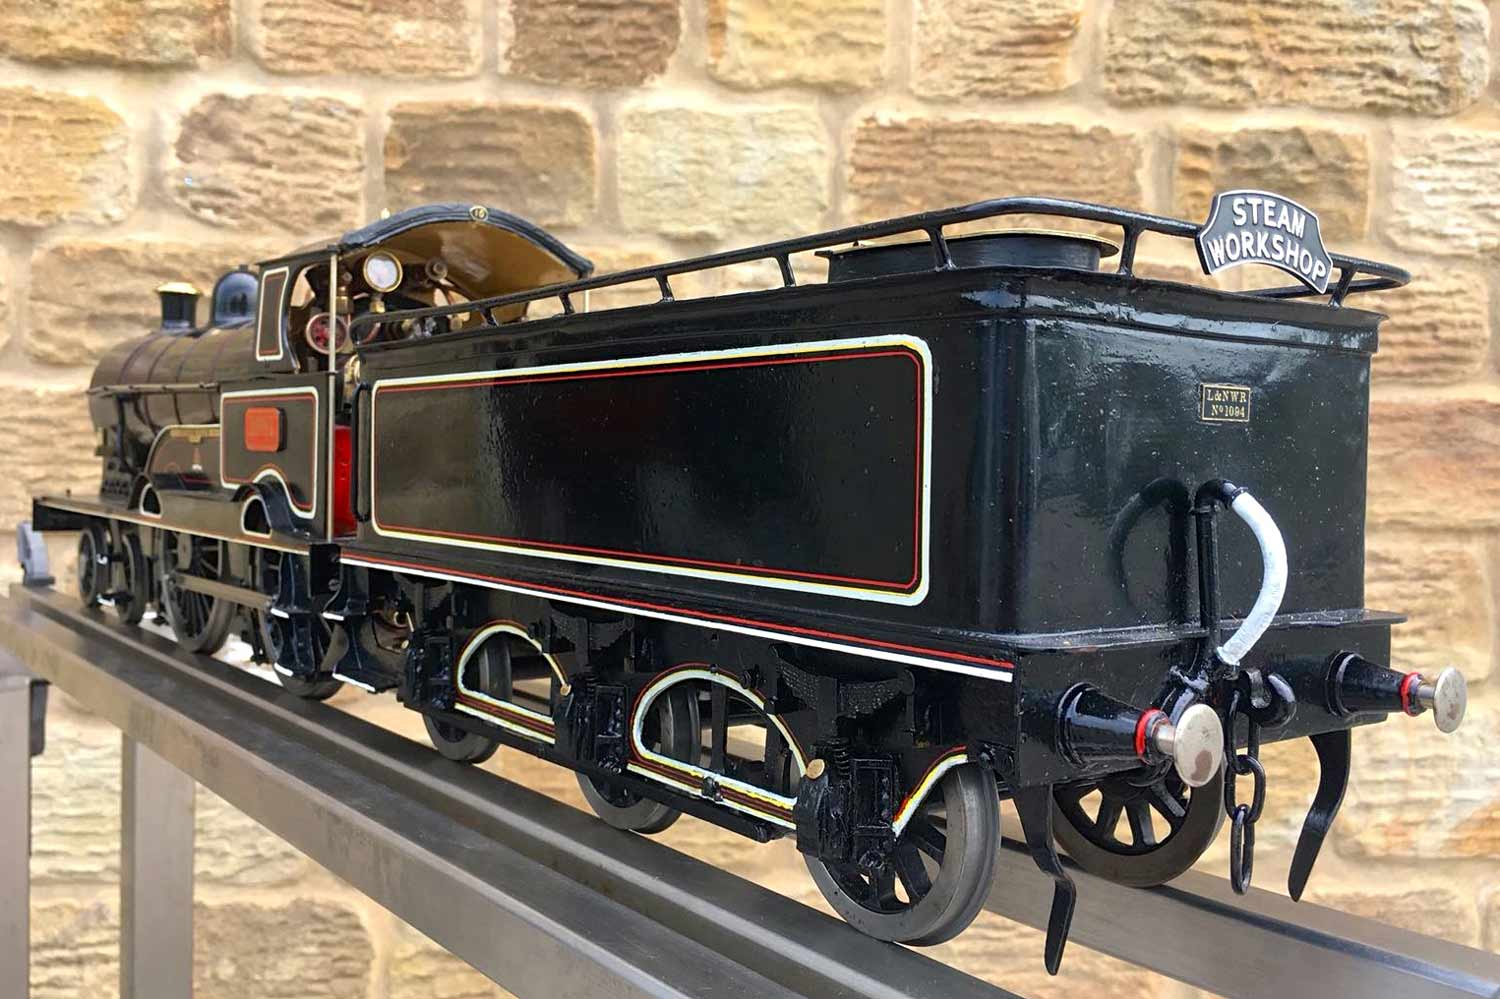 test 3-and-a-half-inch-LNWR-King-George-the-Fifth-live-steam-locomotive-for-sale-08